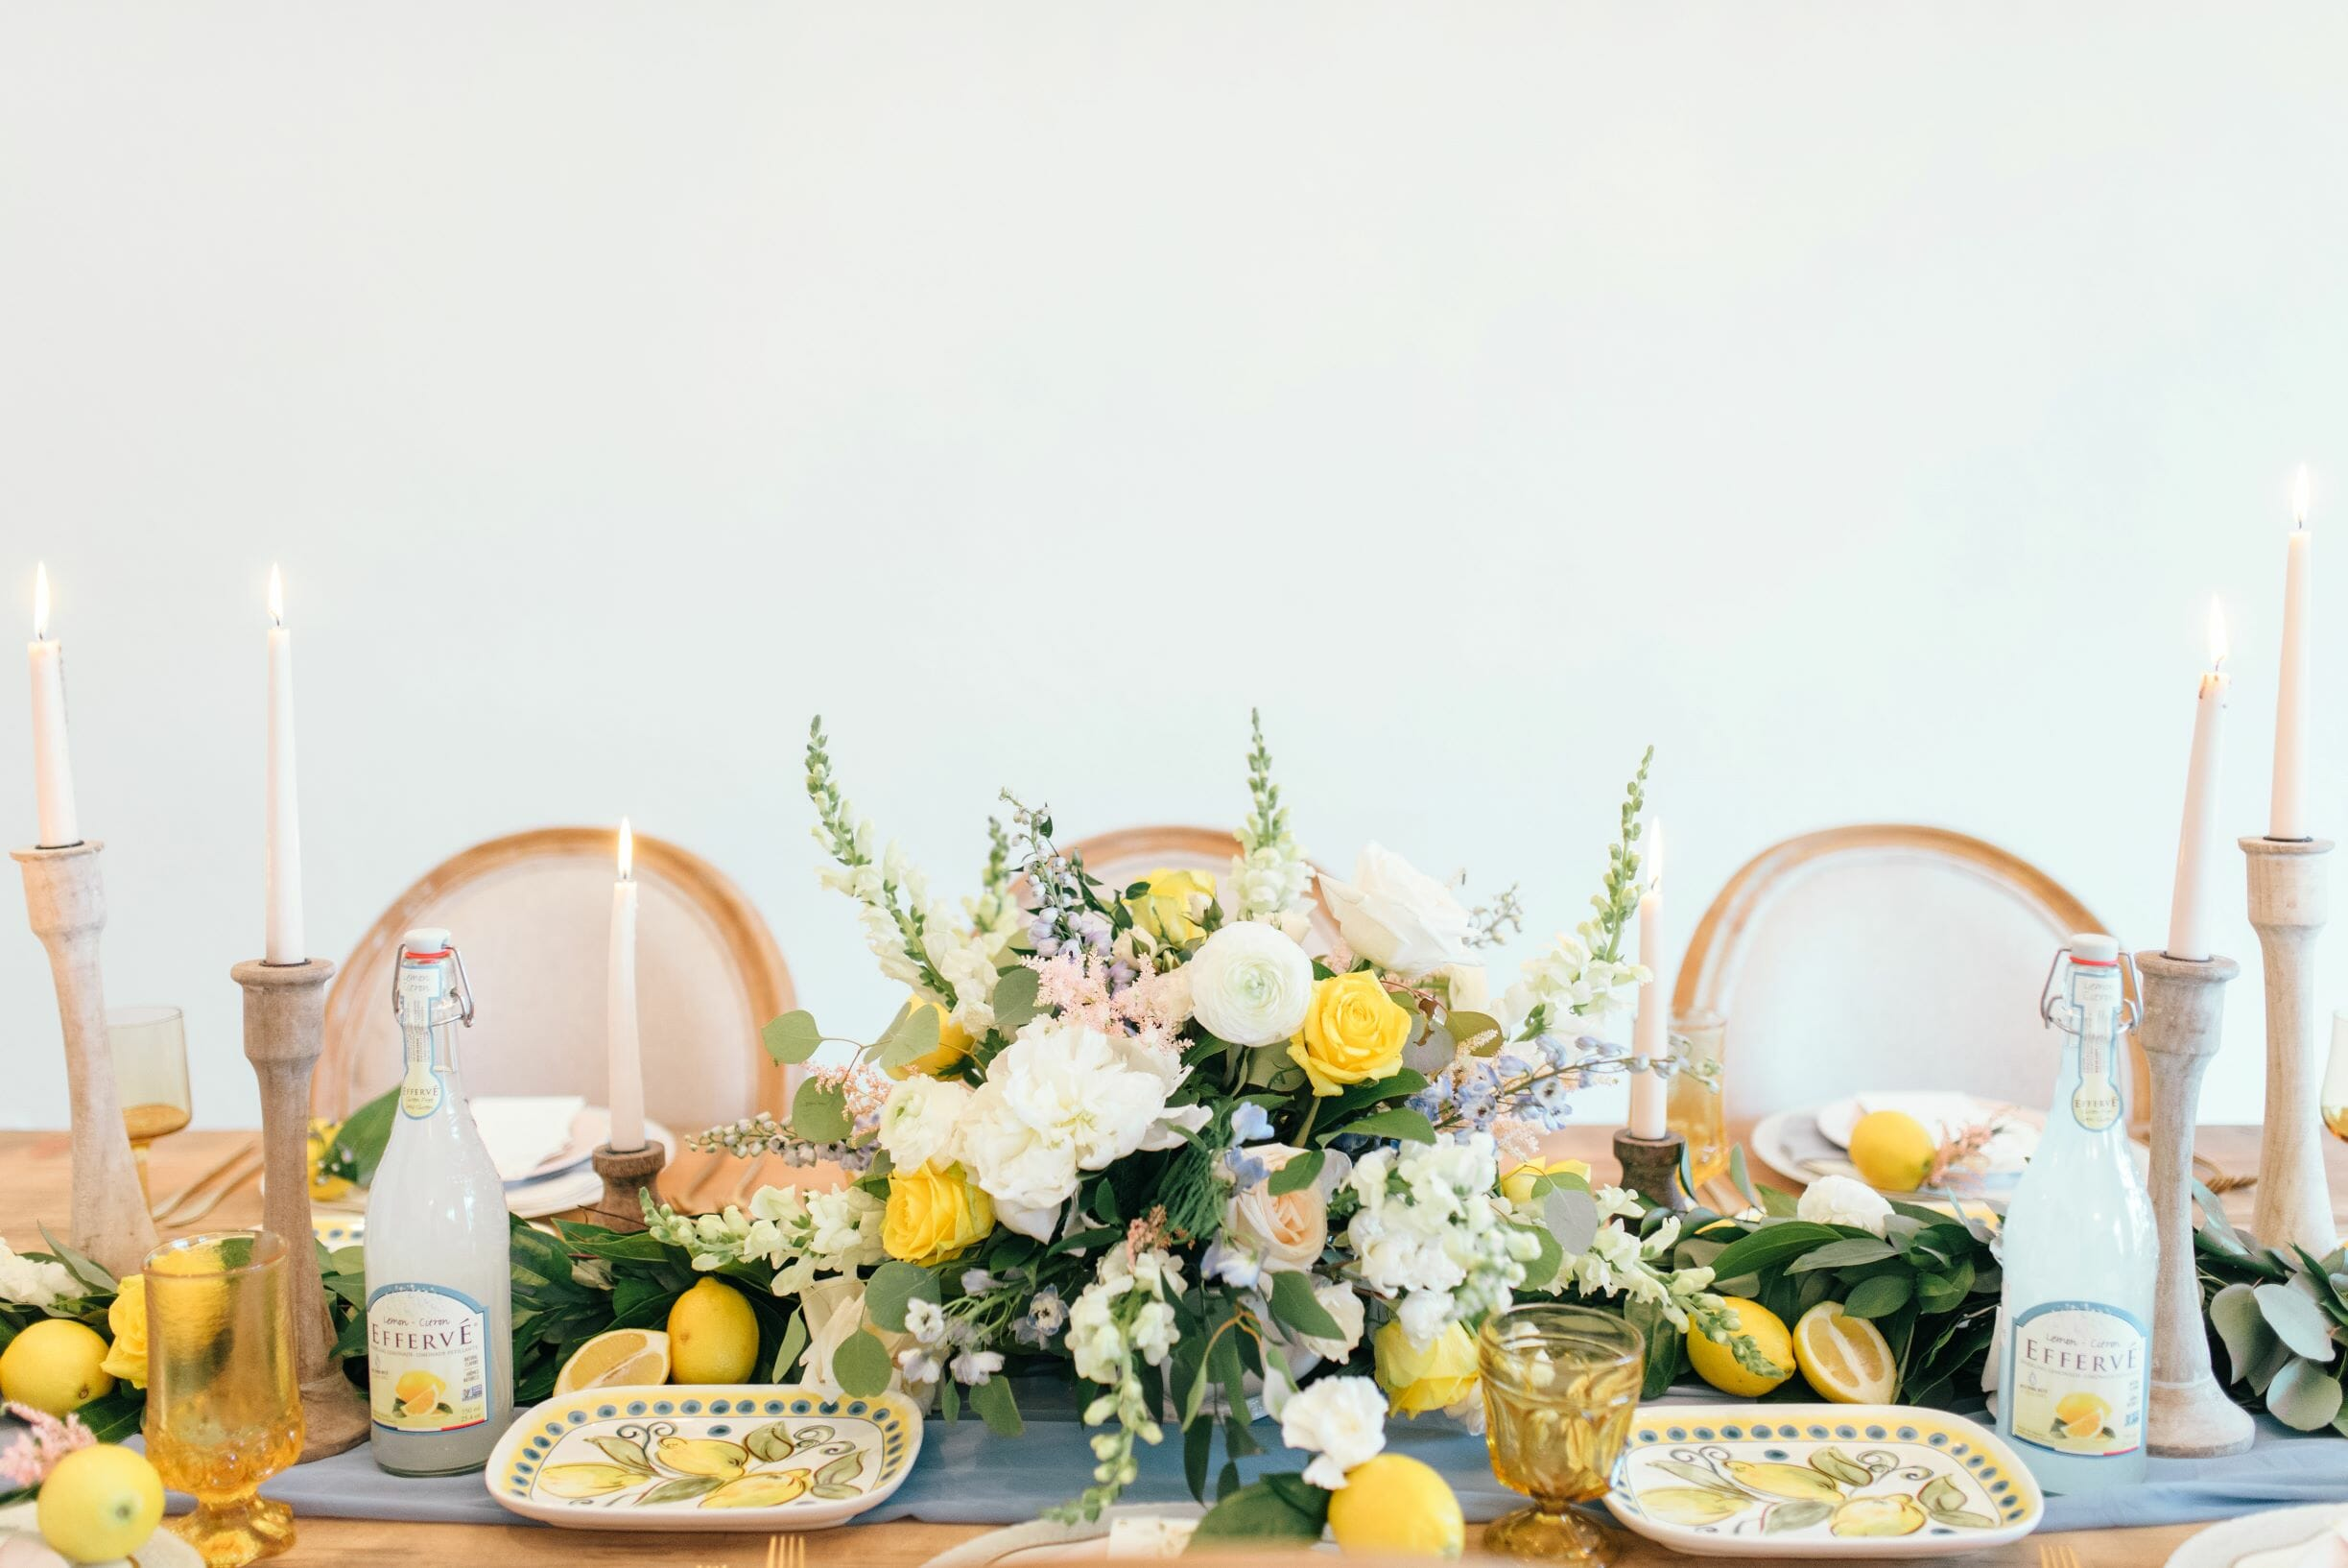 Summer Floral with Citrus